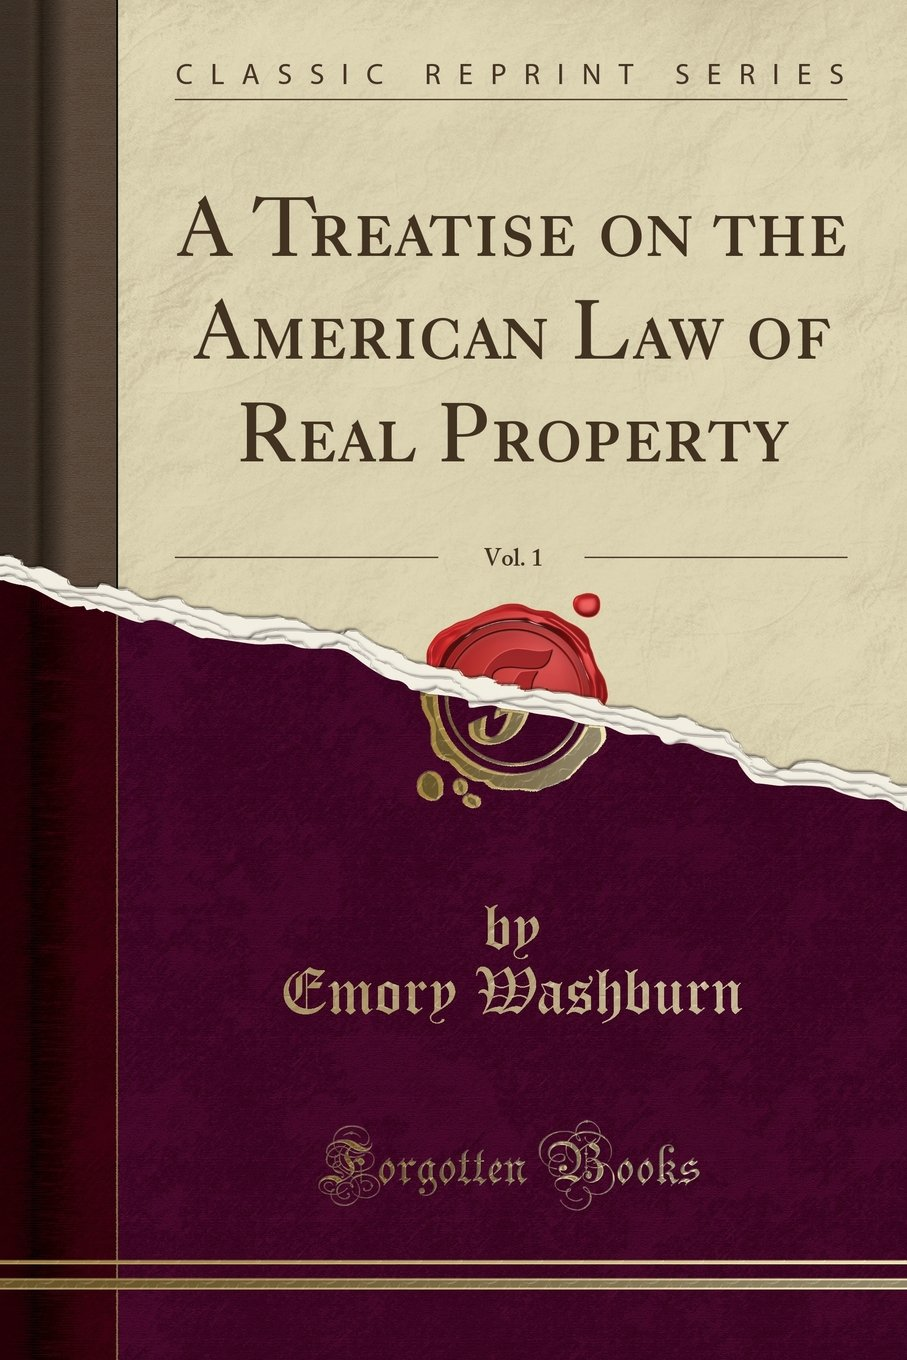 A Treatise on the American Law of Real Property, Vol. 1 (Classic Reprint) ebook